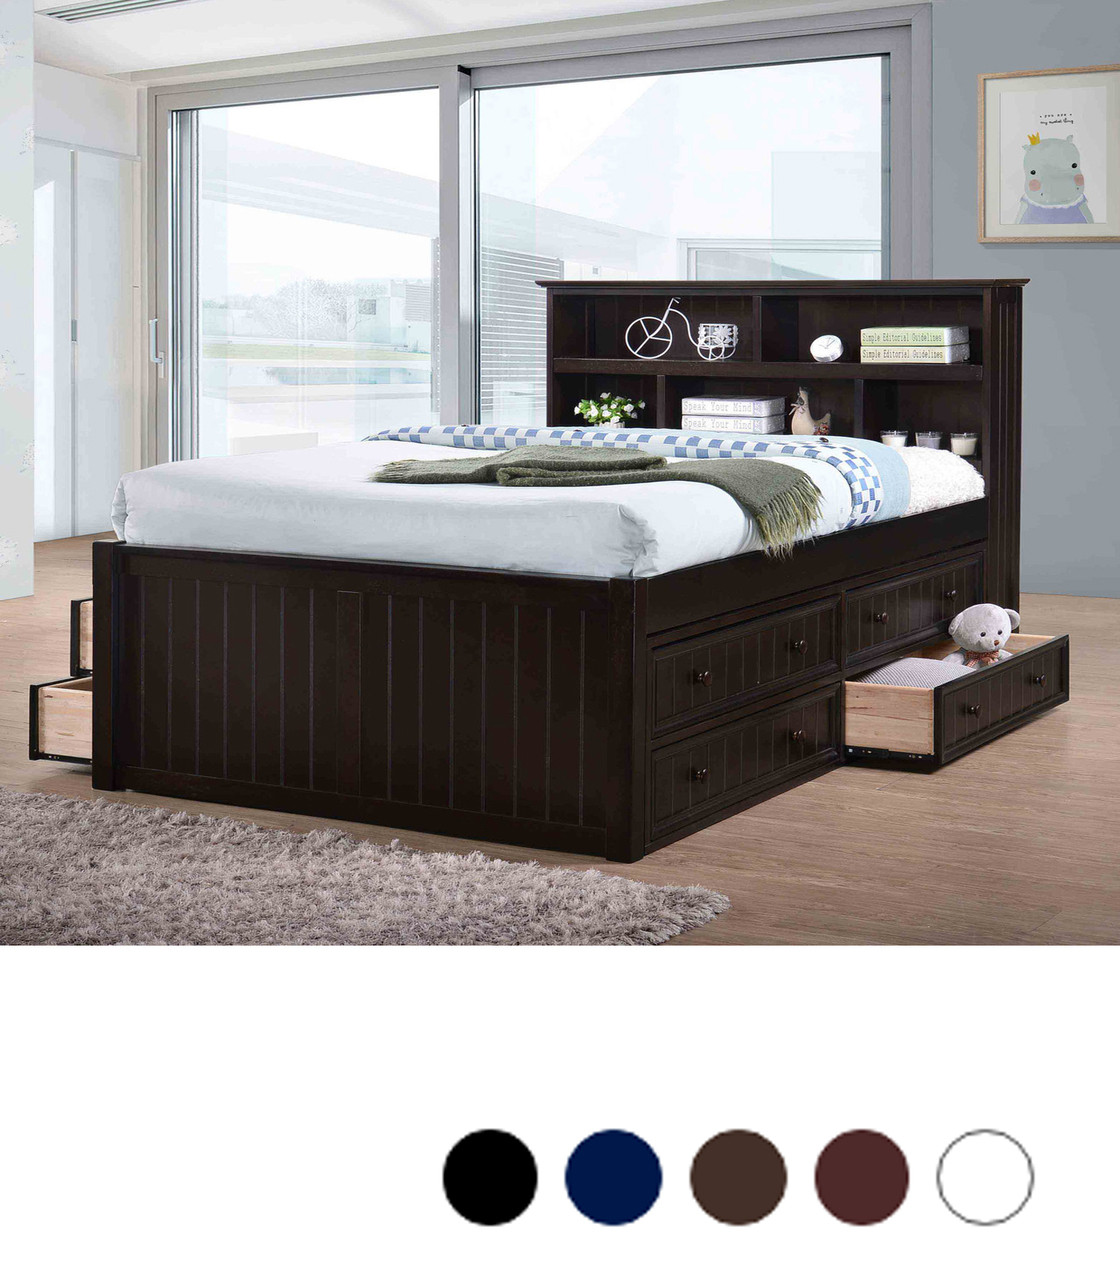 Dillon Xl Full Size Bookcase Captain S Bed With 4 To 8 Drawers